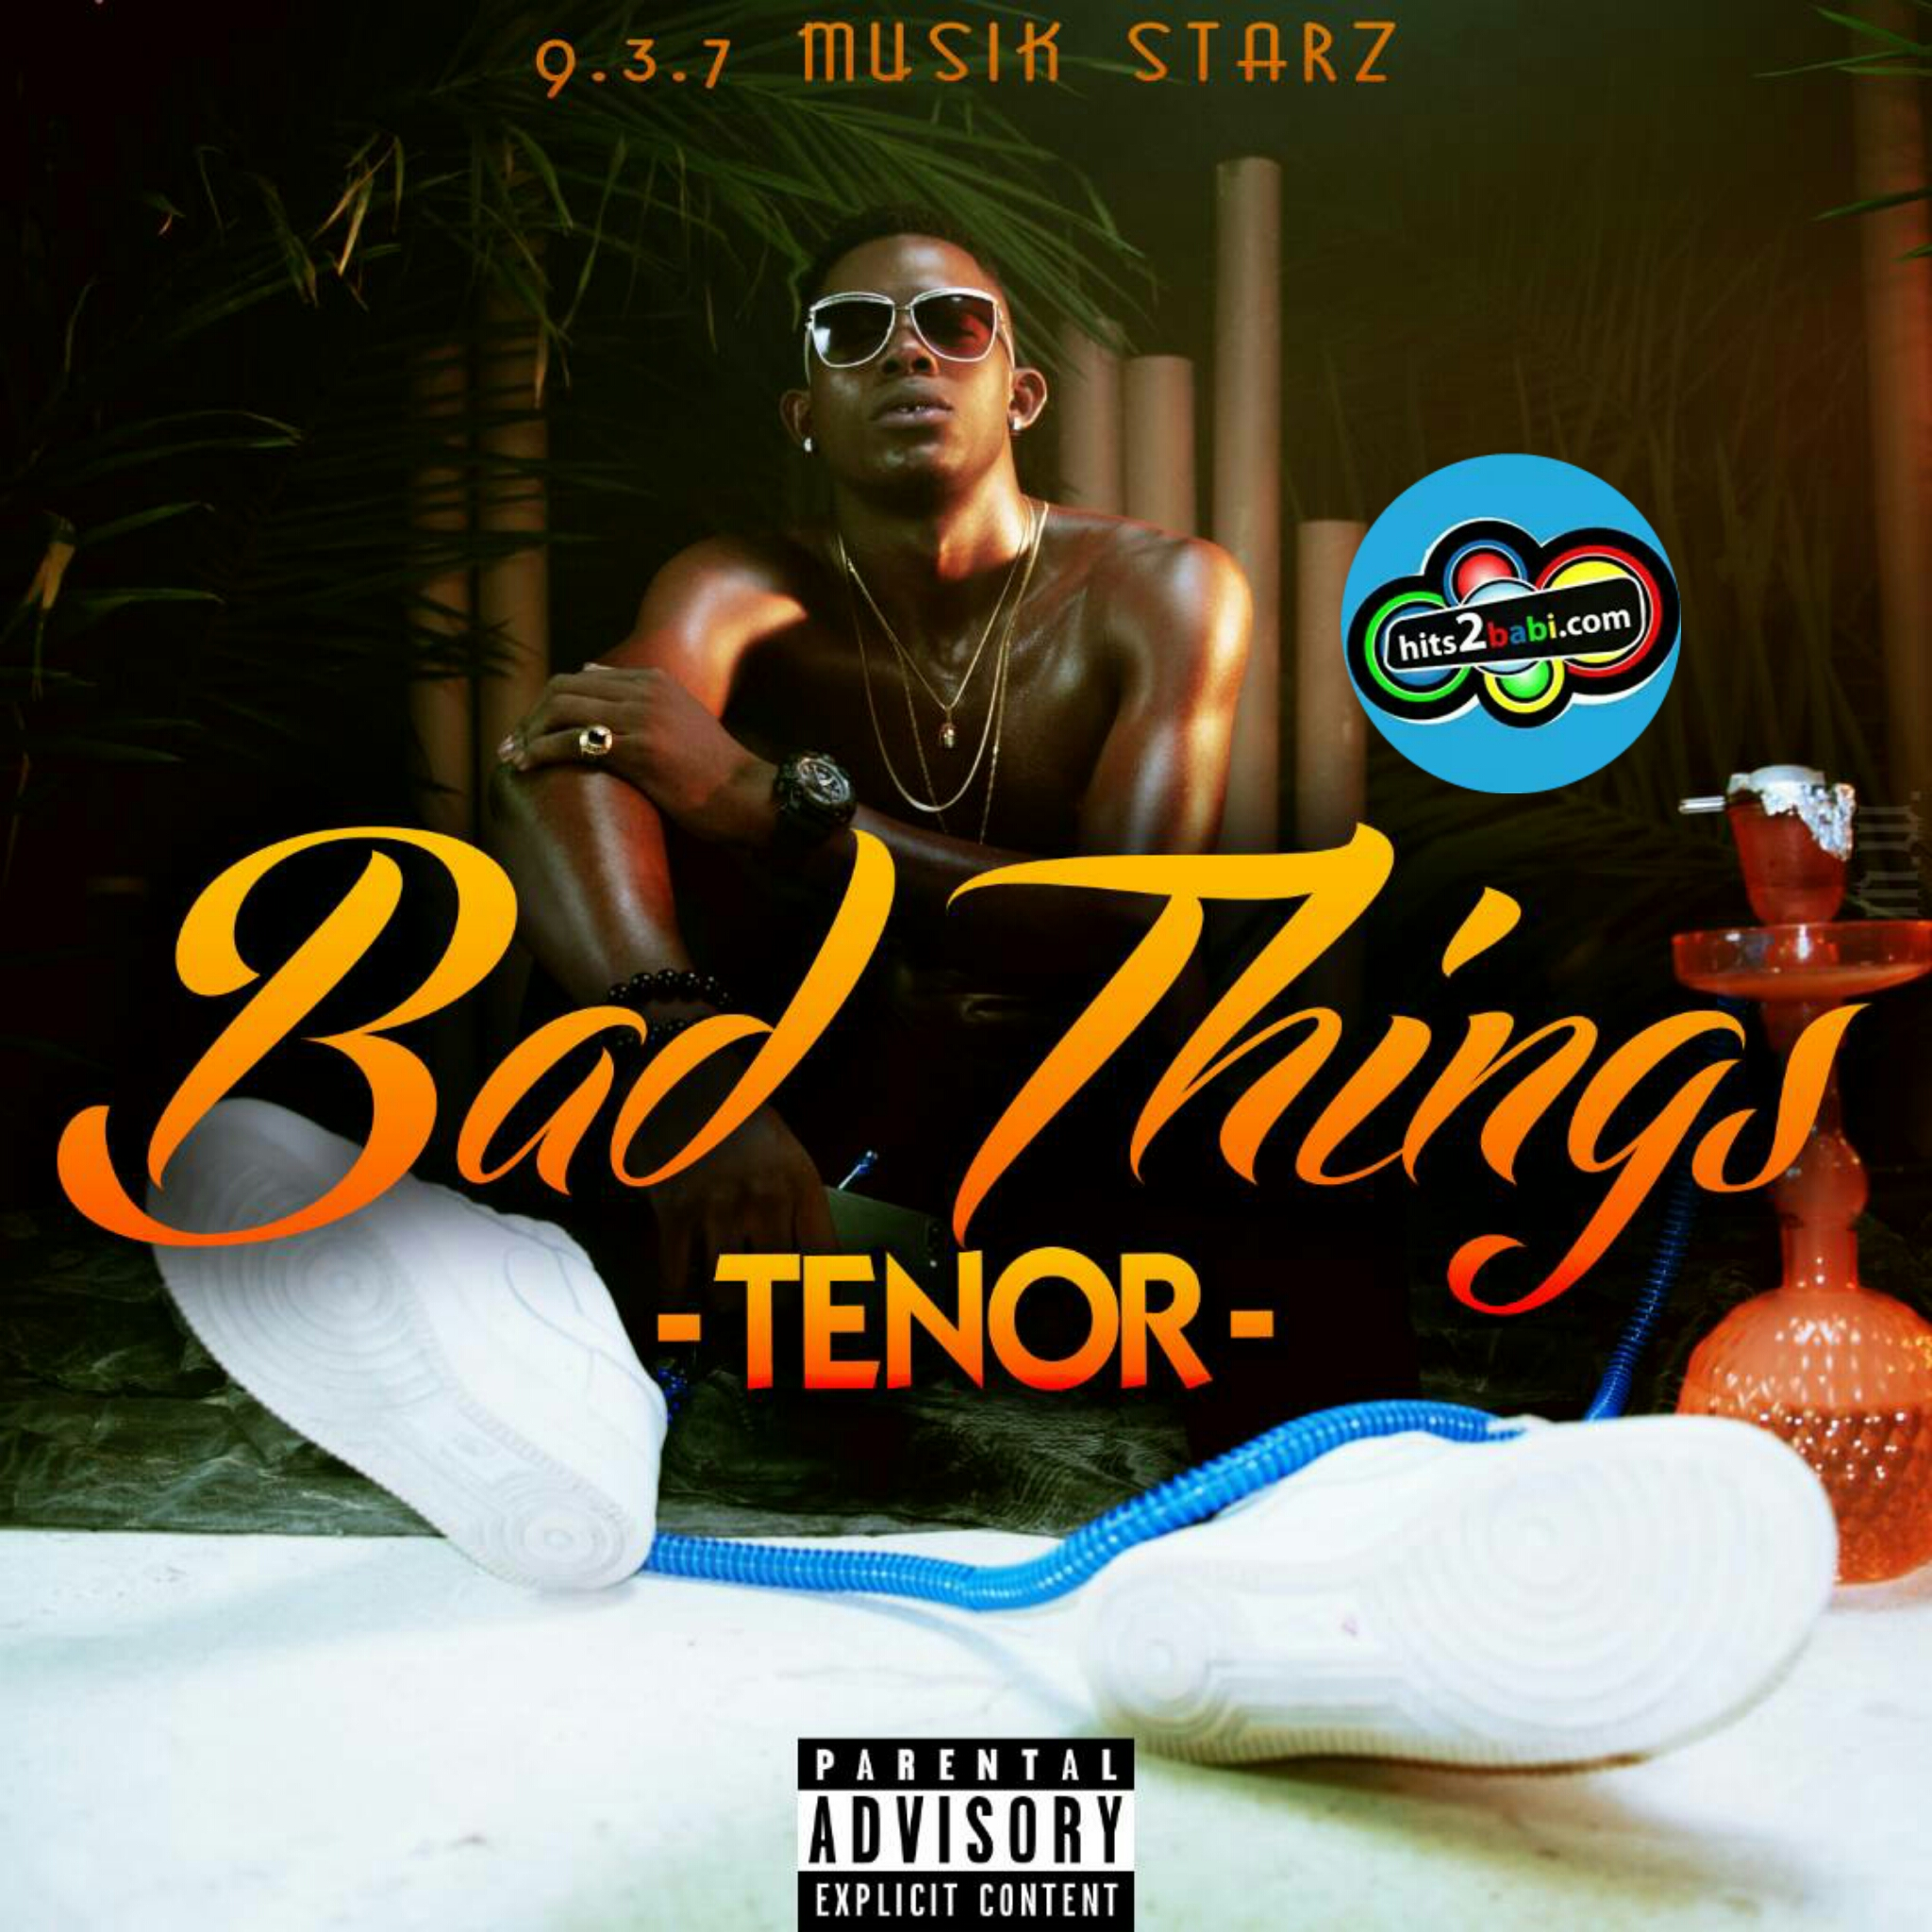 TENOR - BAD THINGS